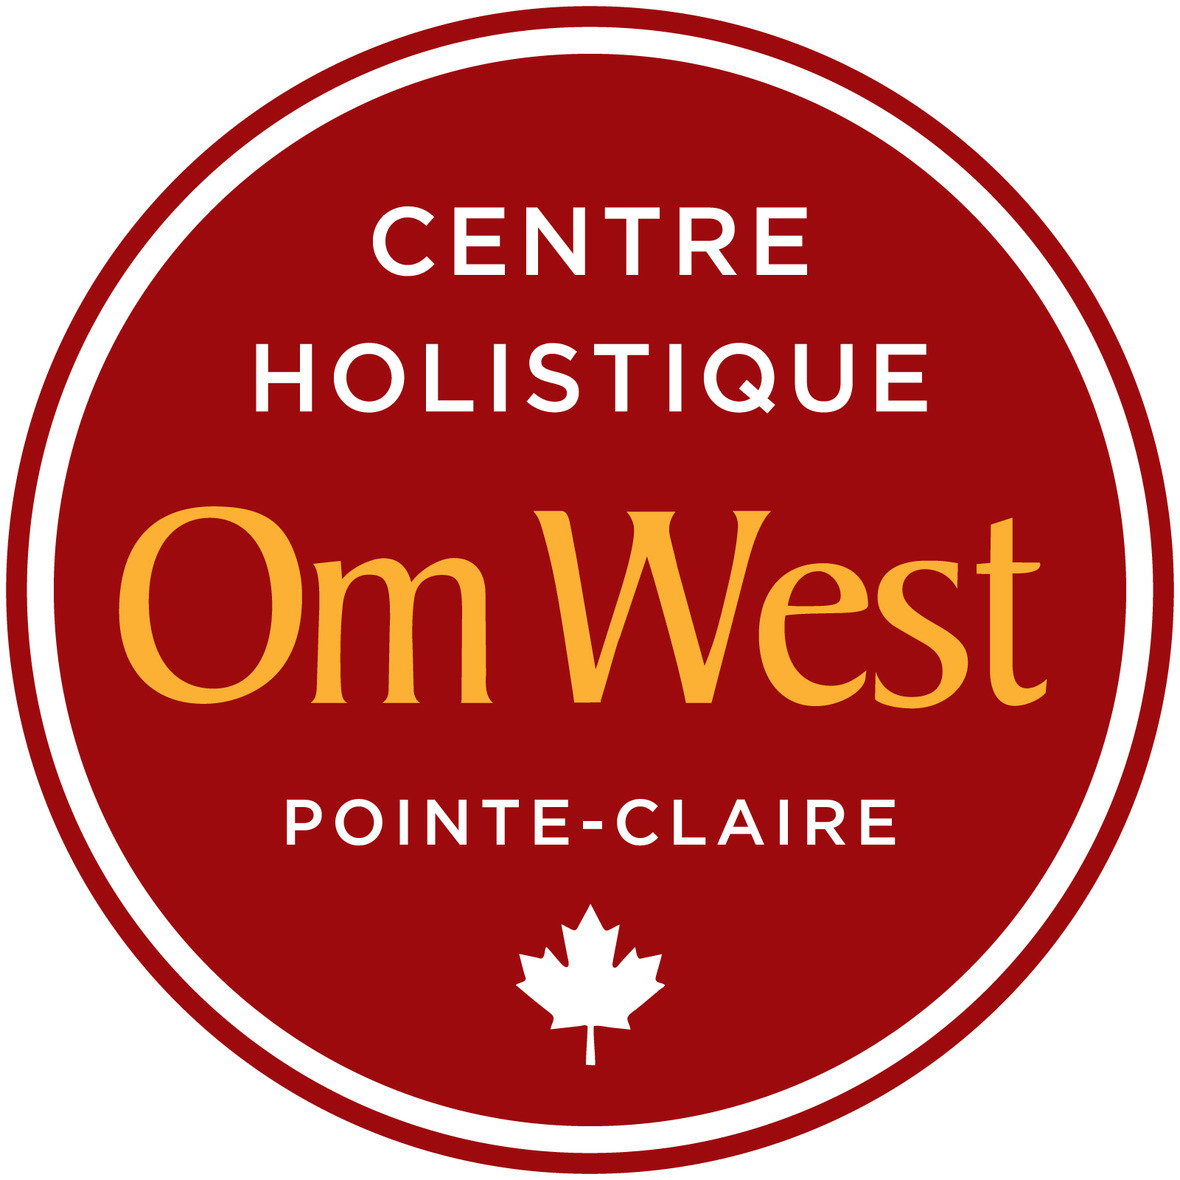 Om West Official logo July